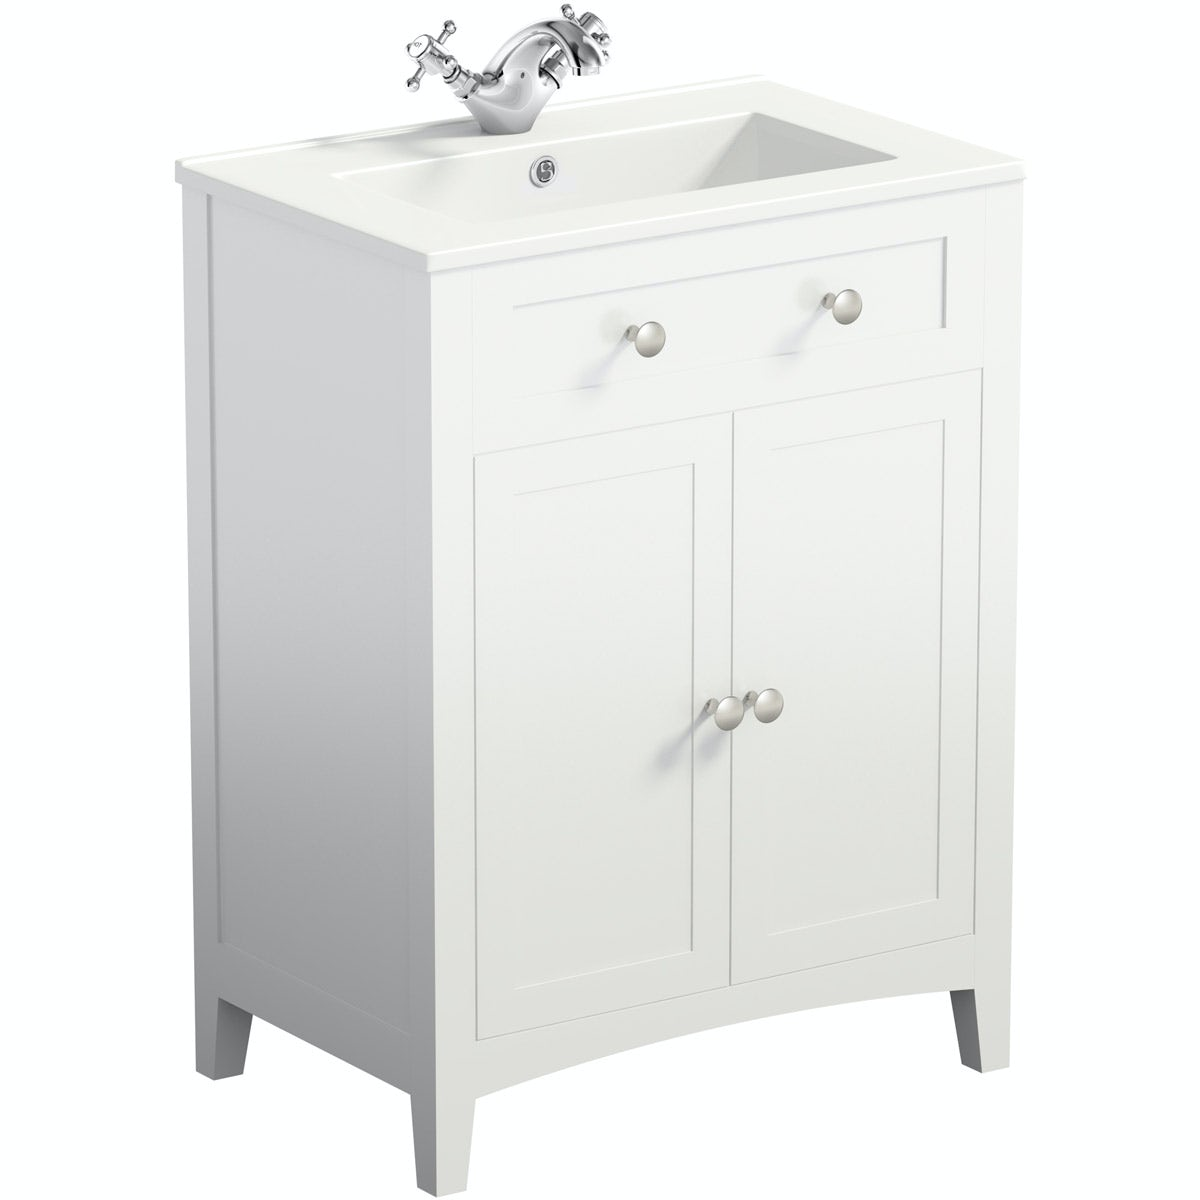 The Bath Co. Camberley white vanity unit with basin 600mm